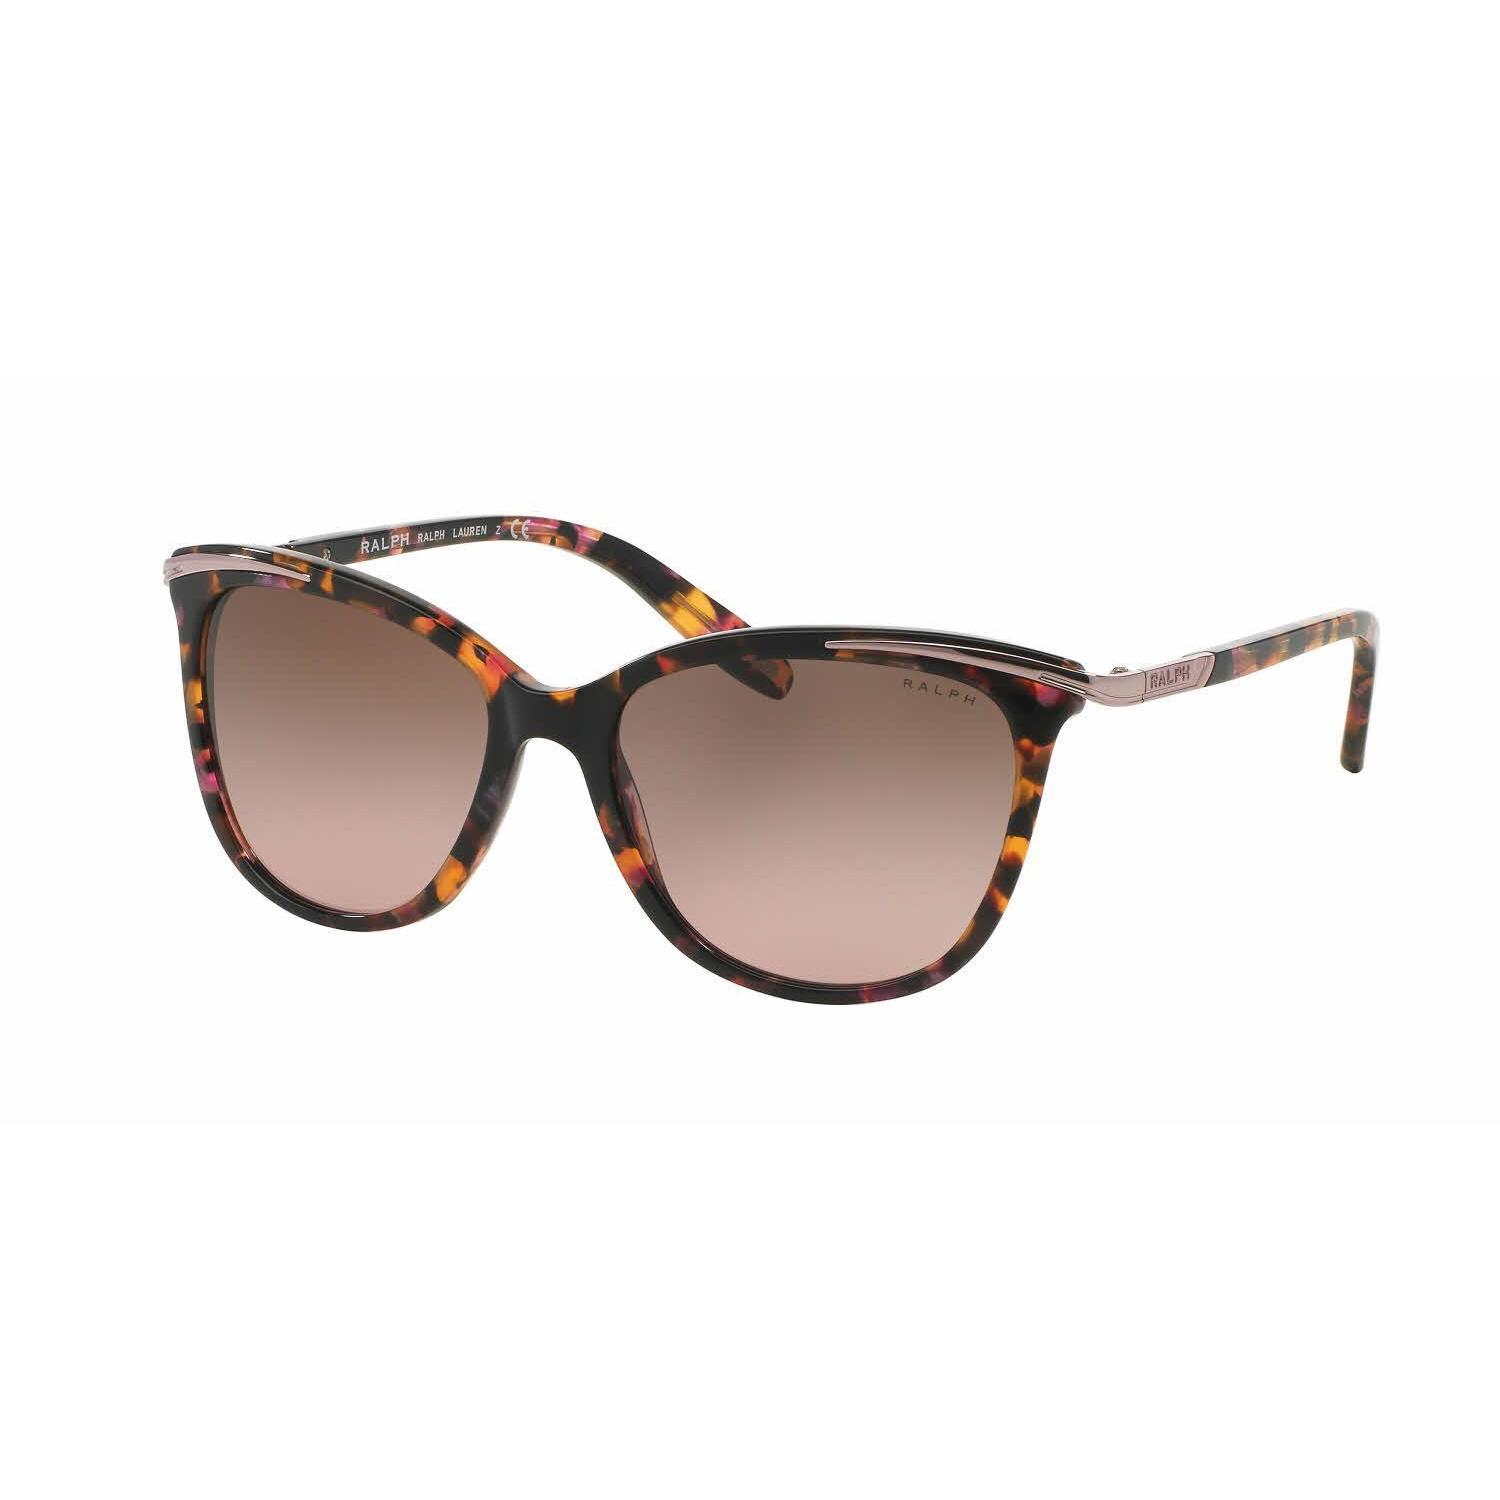 fdc635f5e5 Shop Ralph Women RA5203 146114 Pink Plastic Cat Eye Sunglasses - Free  Shipping Today - Overstock.com - 13325841